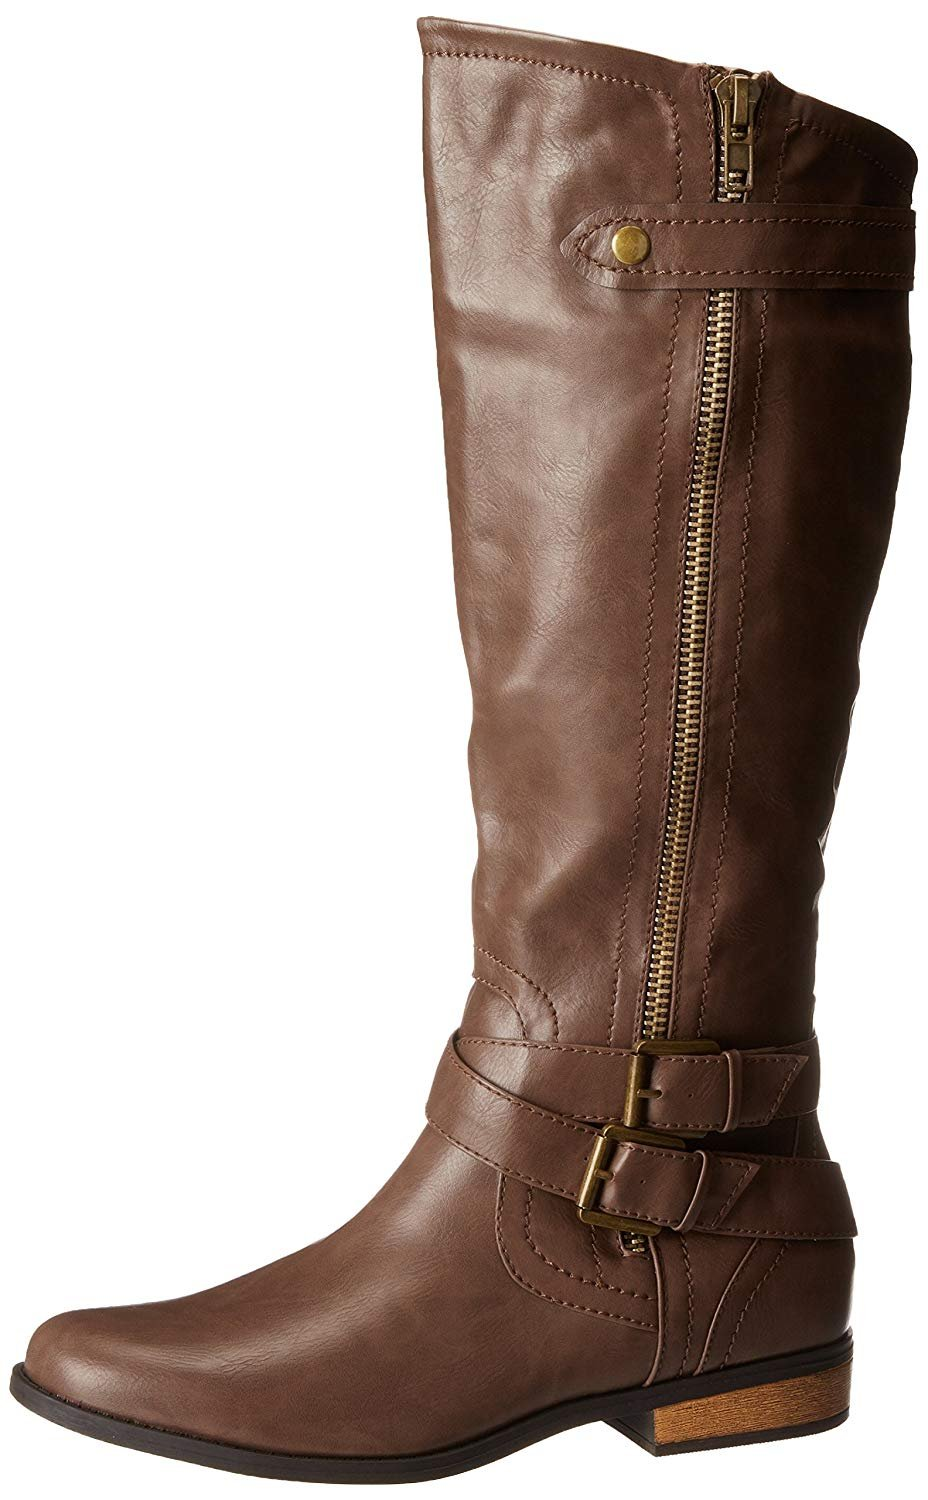 Rampage Women's Hansel Zipper and Buckle Knee-High Riding Boot B0786NTV88 6 B(M) US|Brown